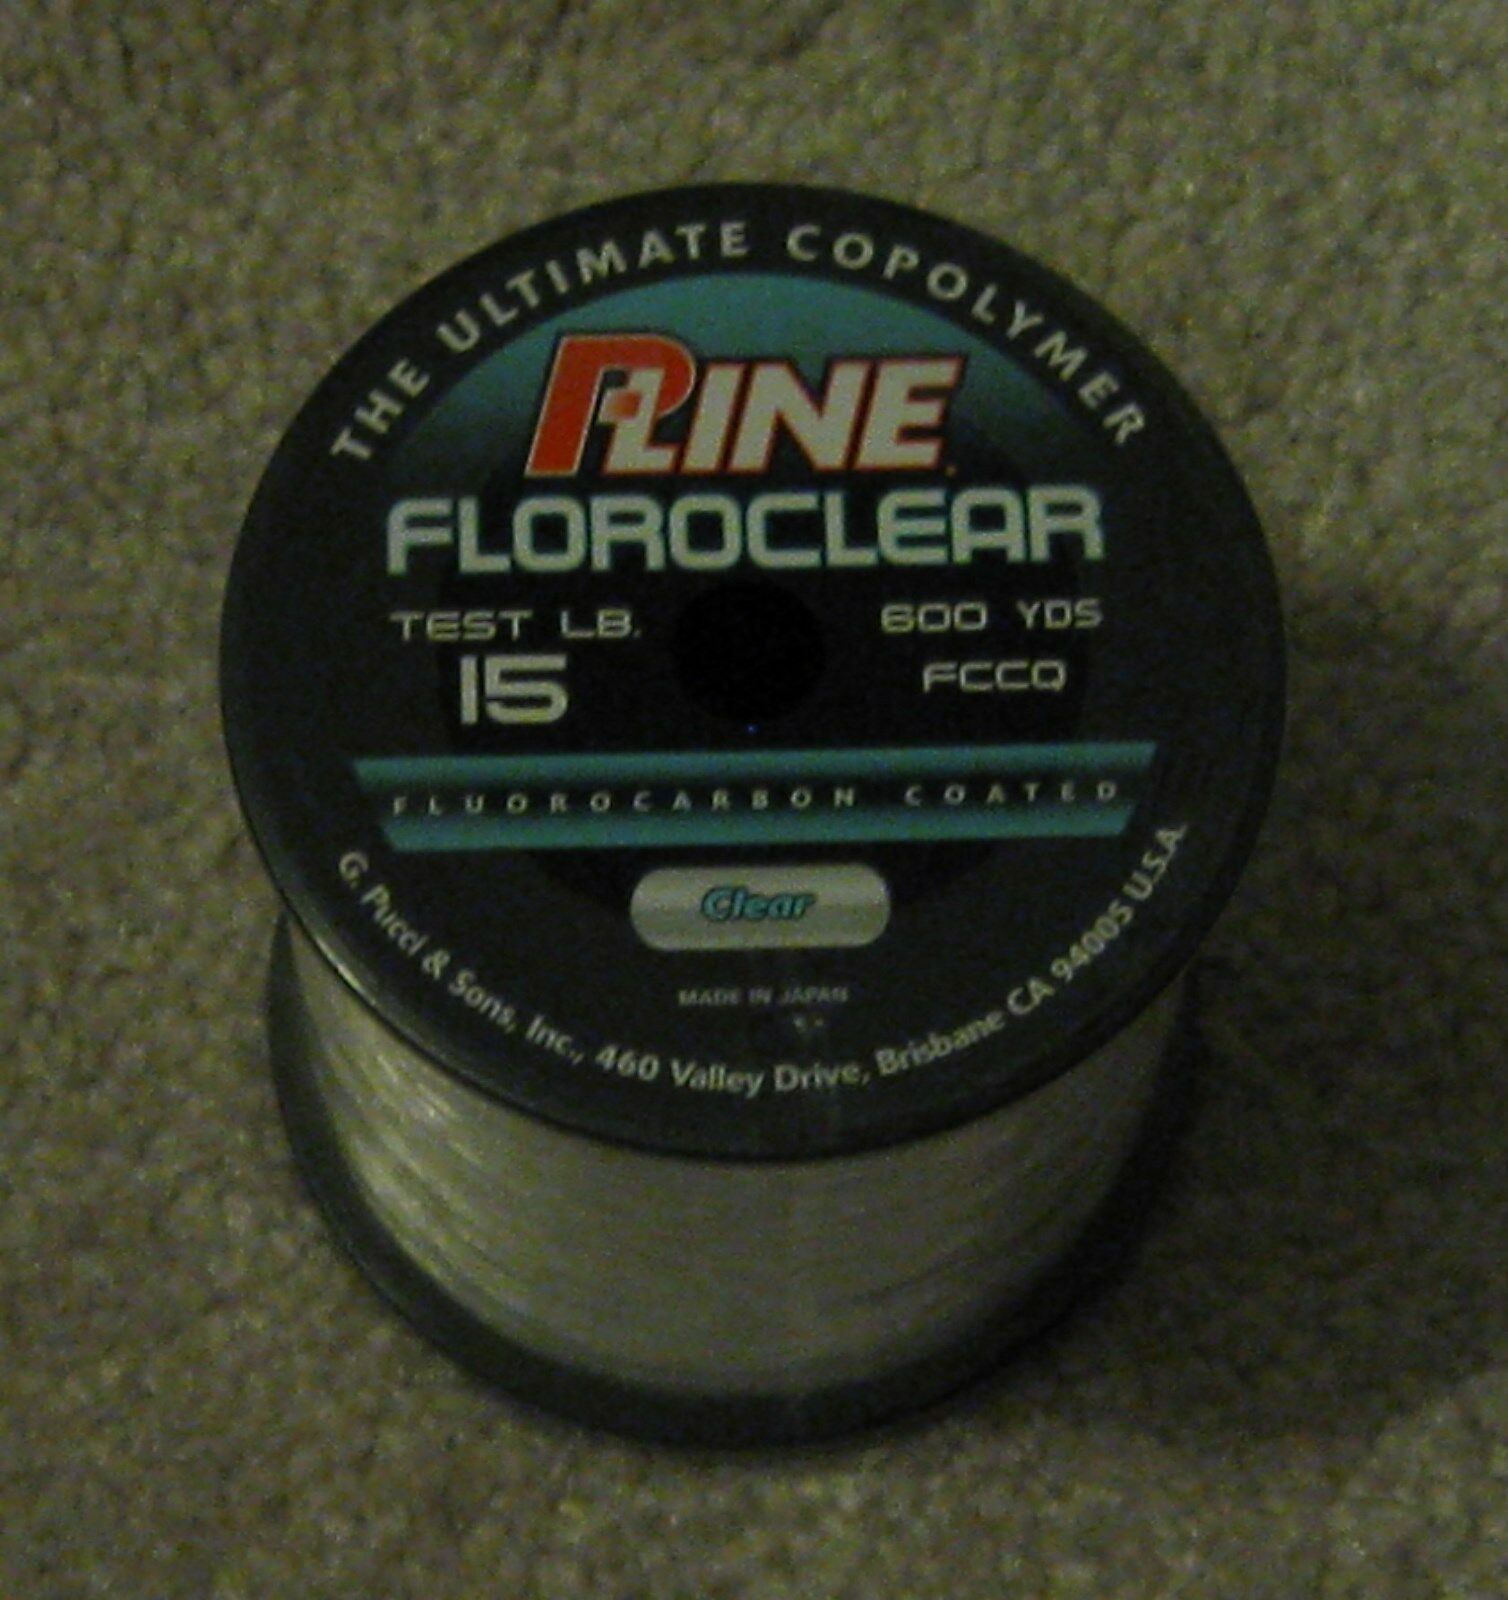 P-Line Floroclear Fluorocarbon Coated Copolymer Fishing Line Clear 15lb 600yd for sale online